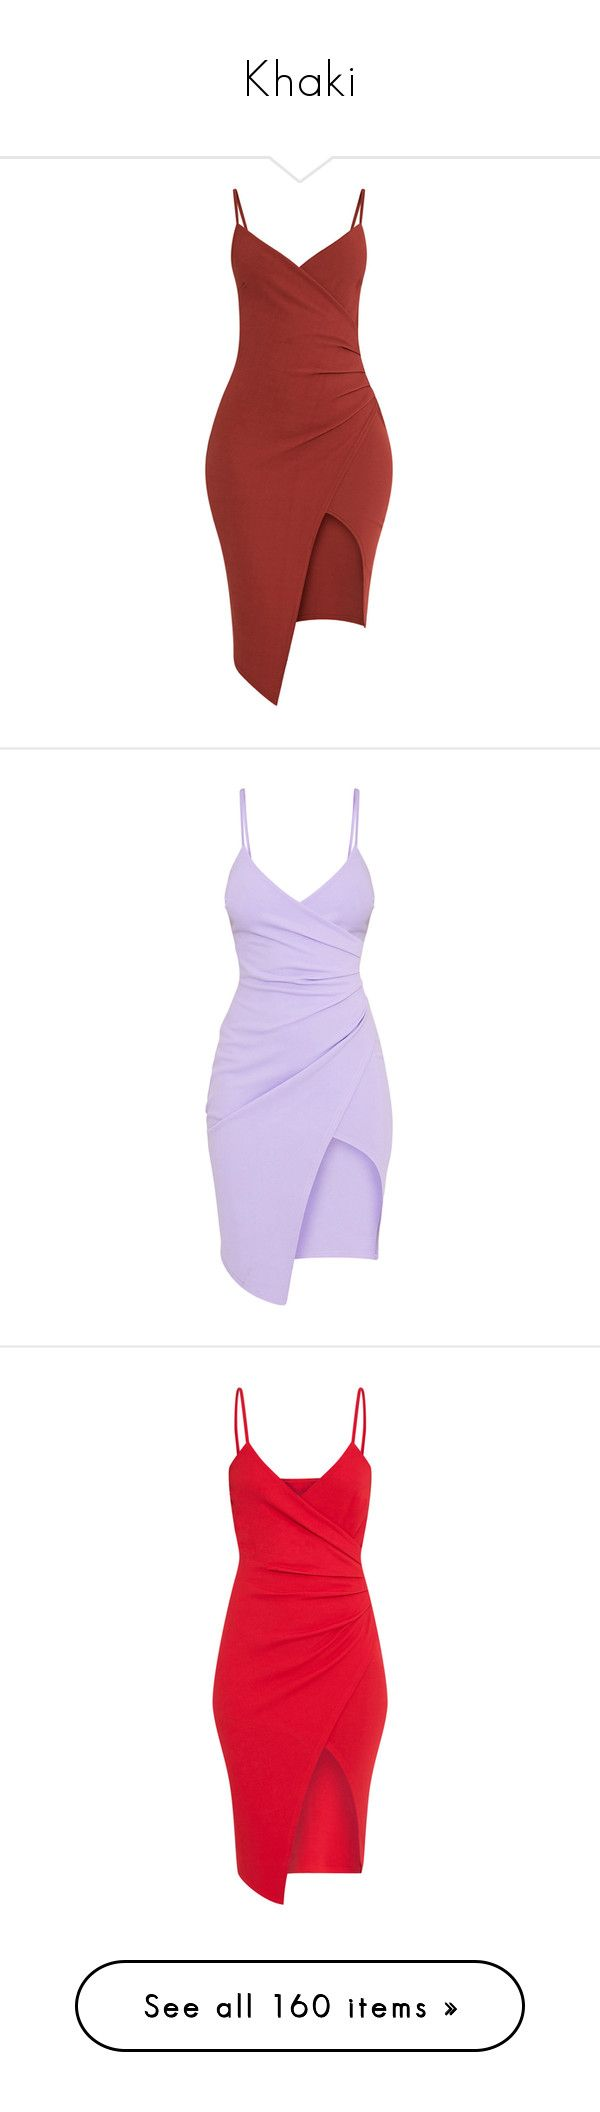 """""""Khaki"""" by angelbrubisc ❤ liked on Polyvore featuring dresses, red dress, wrap front dress, crepe fabric dress, khaki dress, crepe dress, purple dress, lilac midi dress, midi dresses and red day dress"""